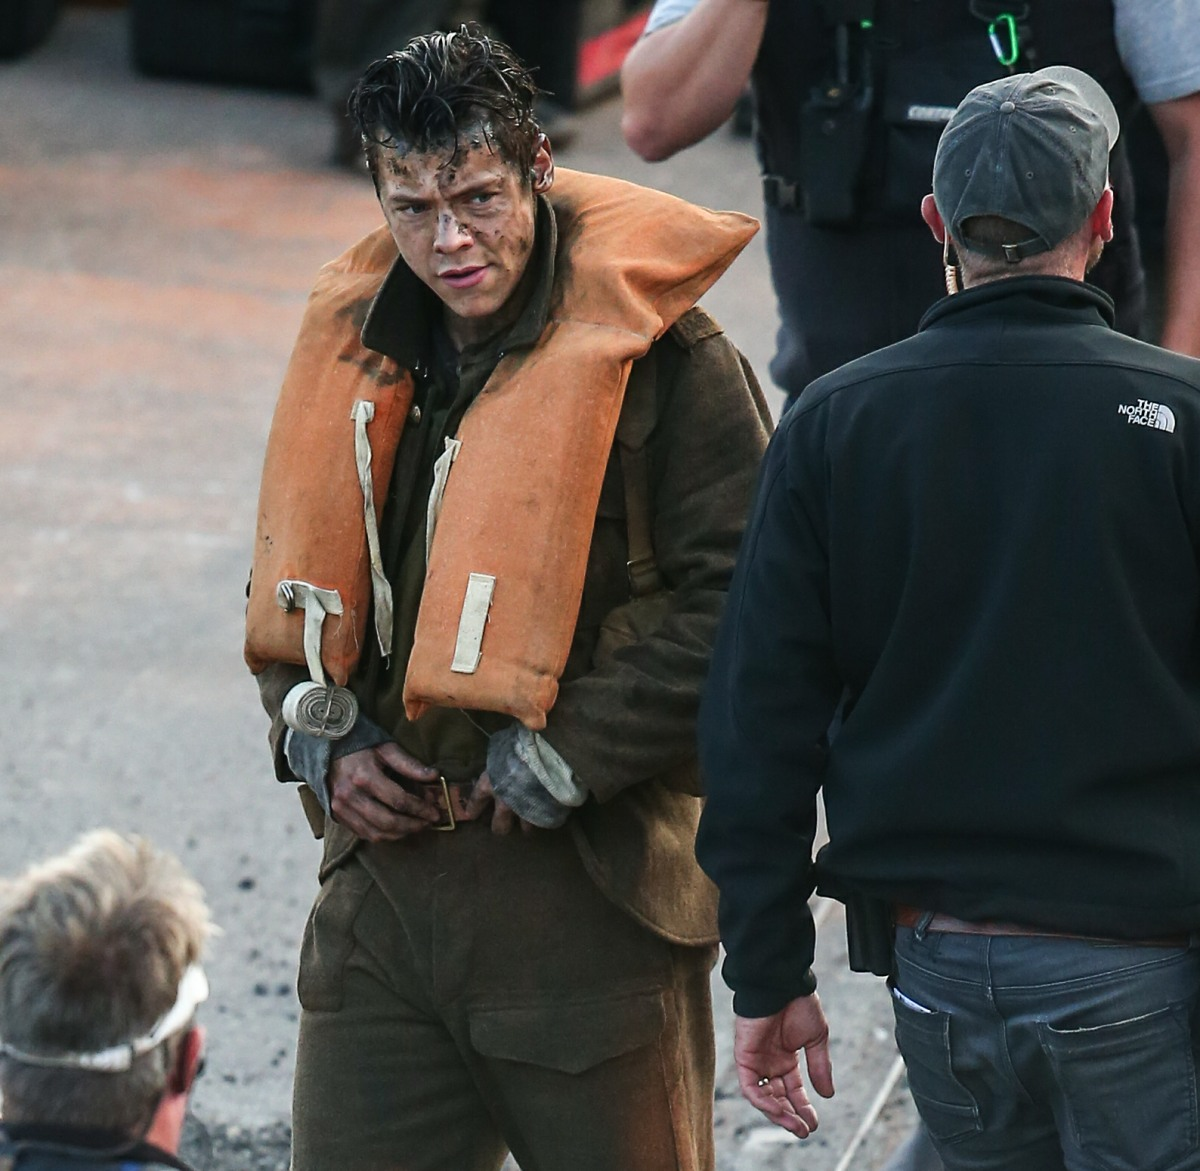 Dunkirk Weymouth filming